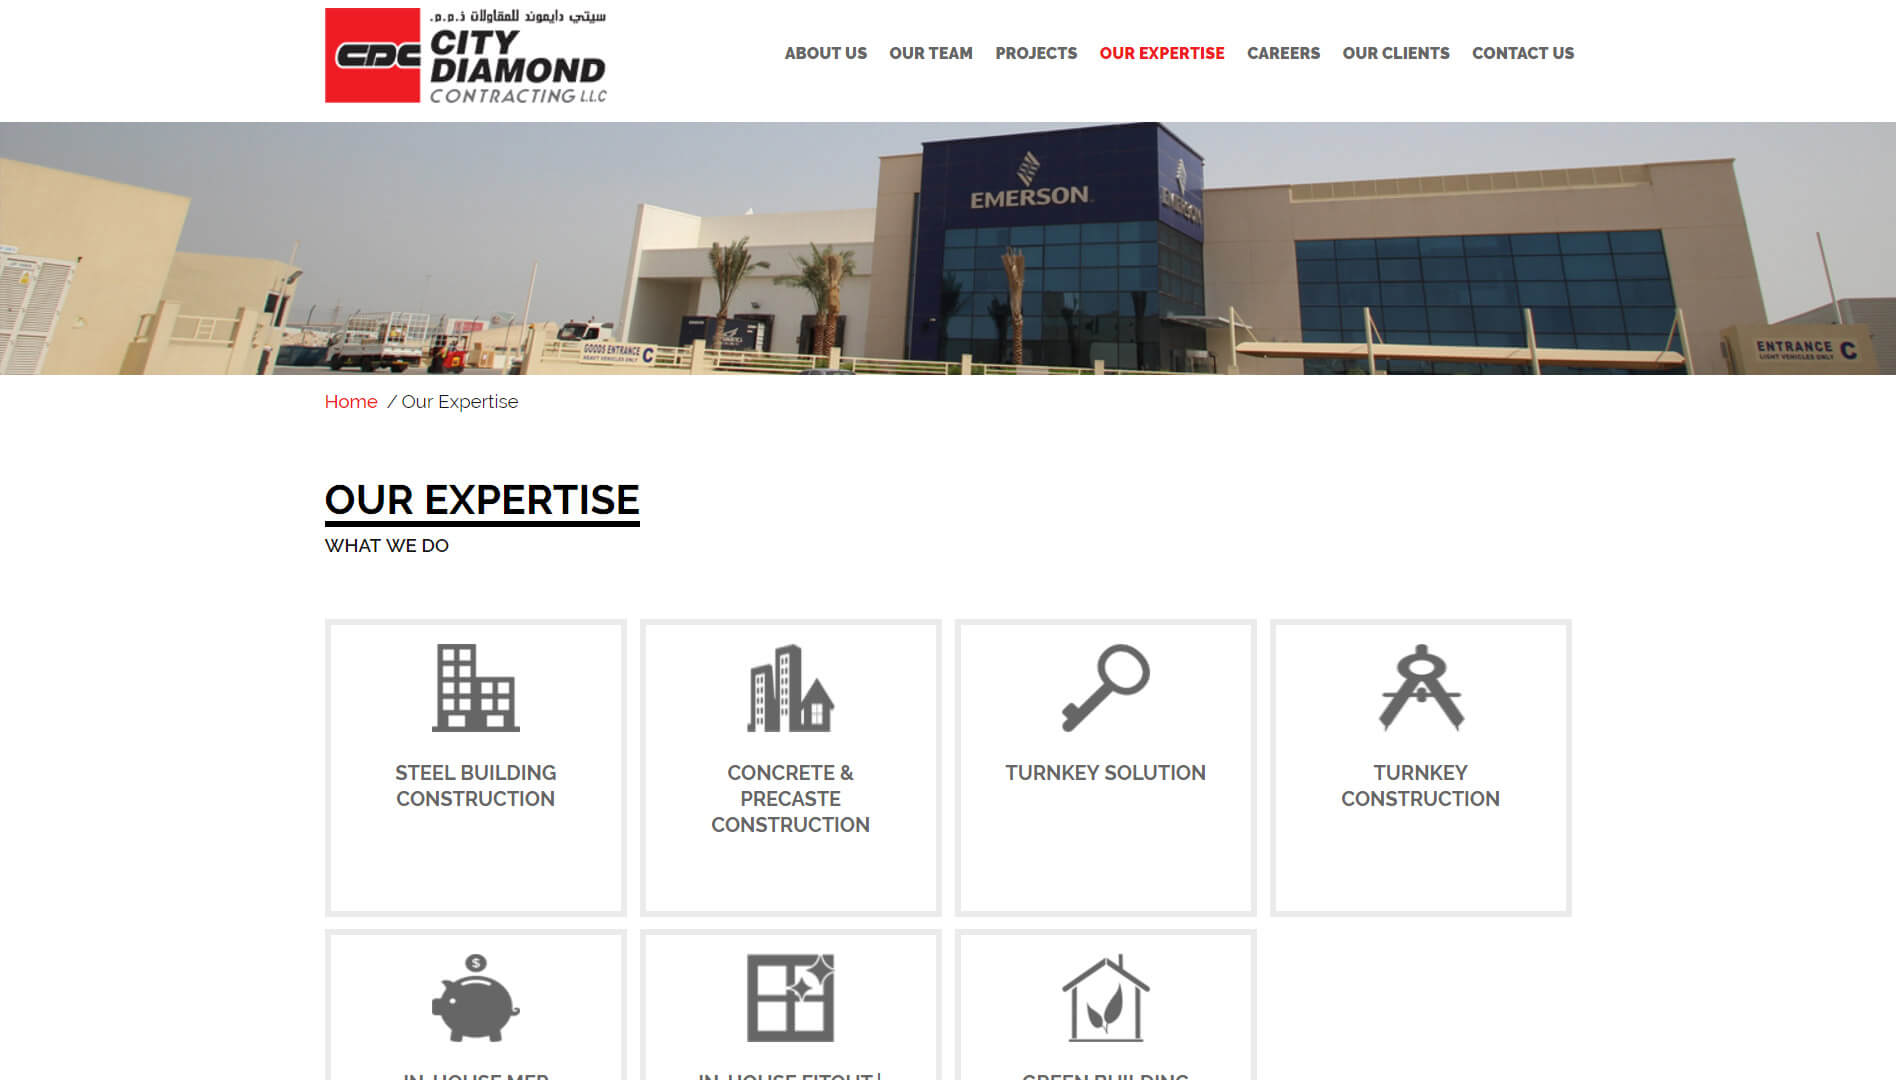 city diamond contracting expertise page design